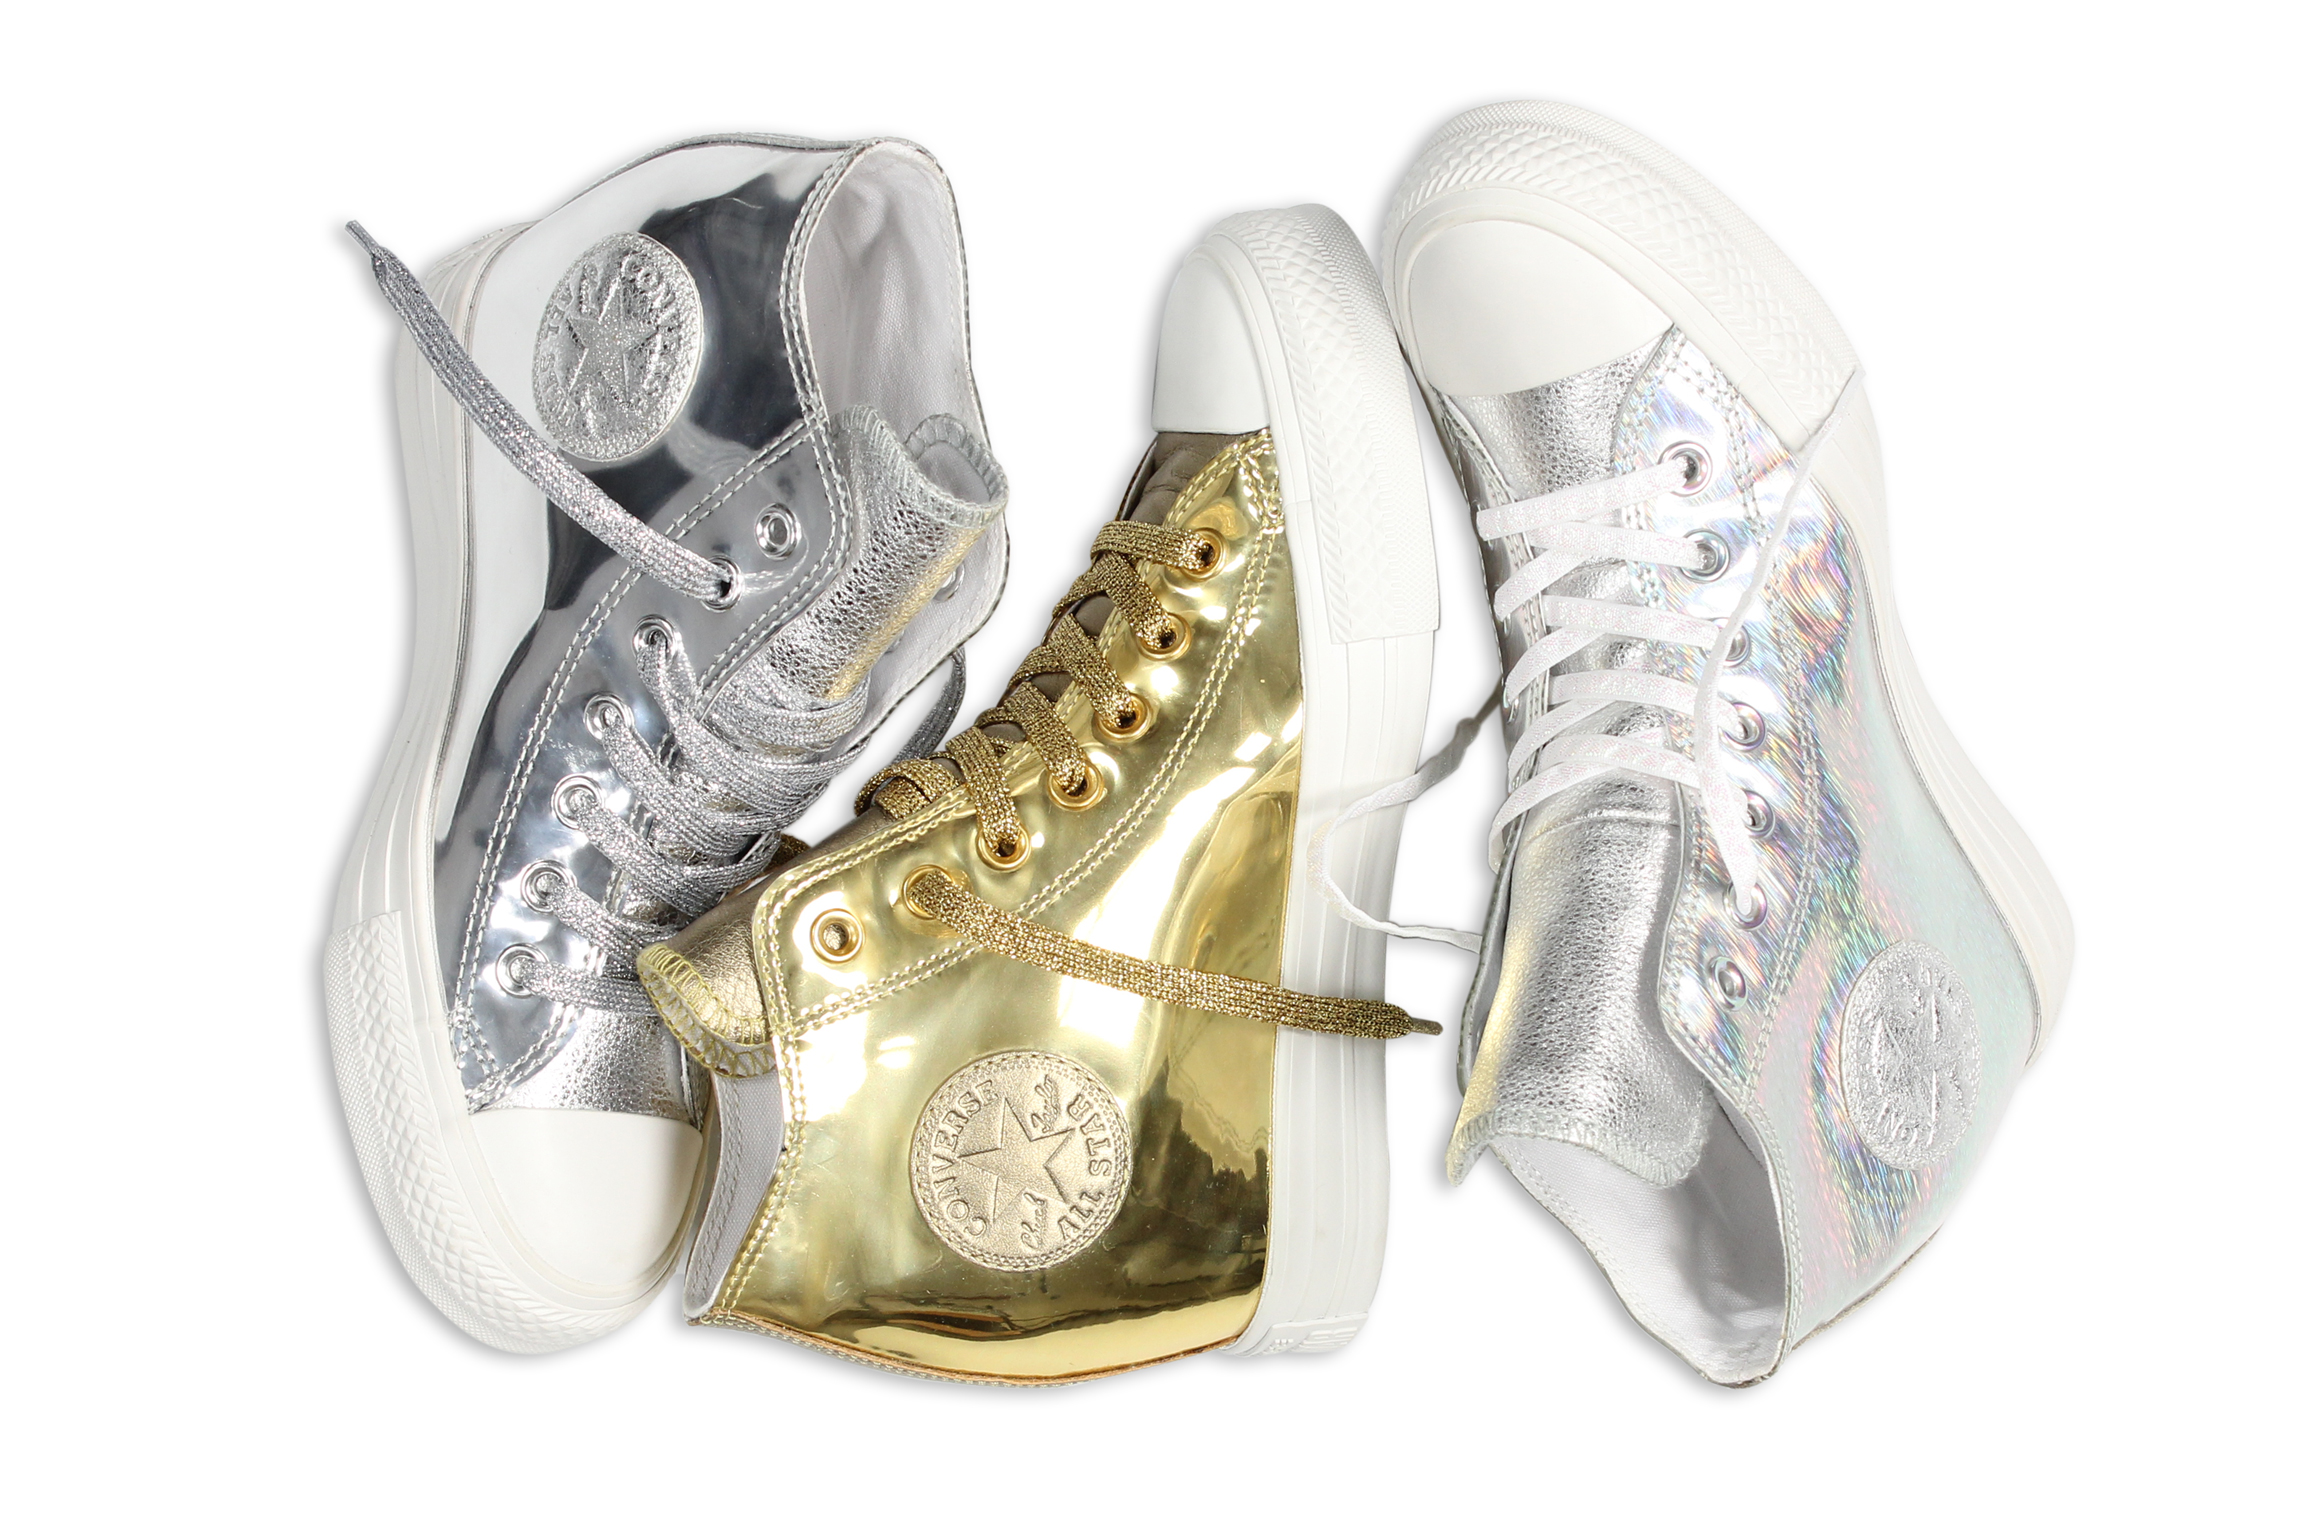 10034a9783ed The Converse Chuck Taylor All Star Metallic Lux Collection is available now  from www.converse.com.au and other select retailers for RRP  140.